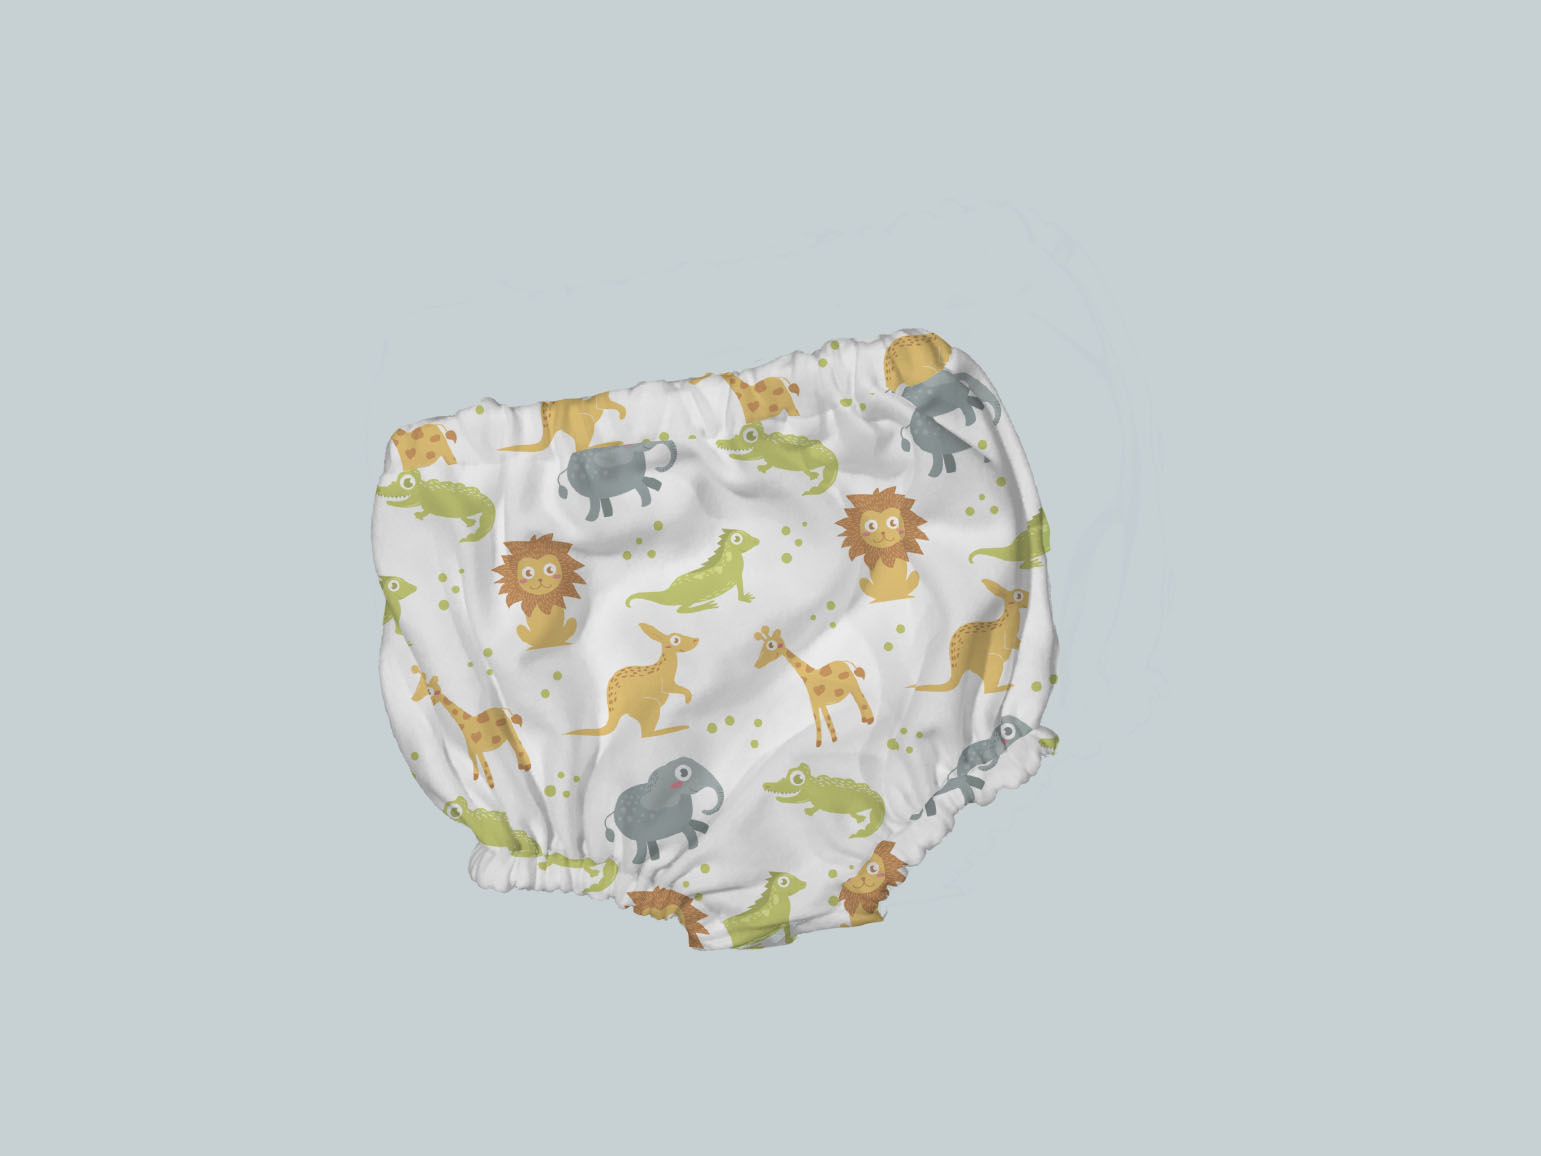 Bummies/Diaper Cover - Animal Crackers